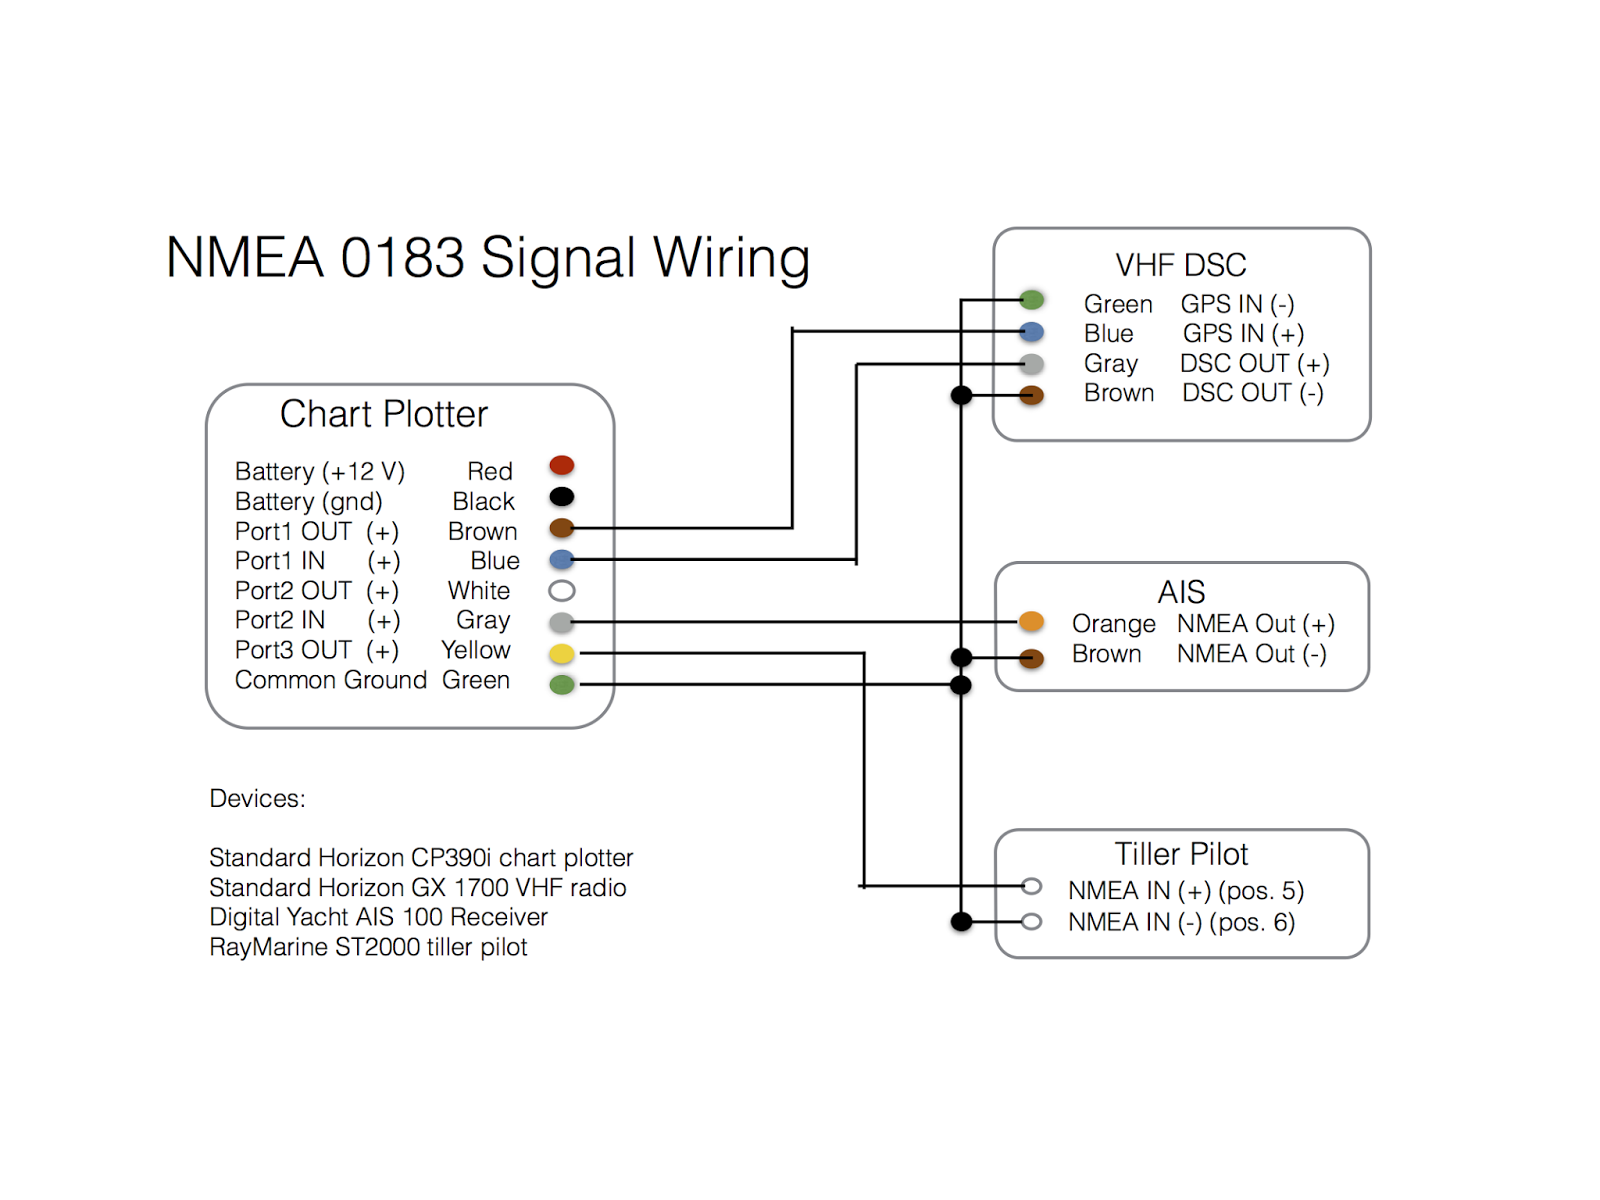 standard radio wiring diagram fender usa standard telecaster wiring diagram connecting a chart plotter, vhf, ais receiver and tiller ... #15